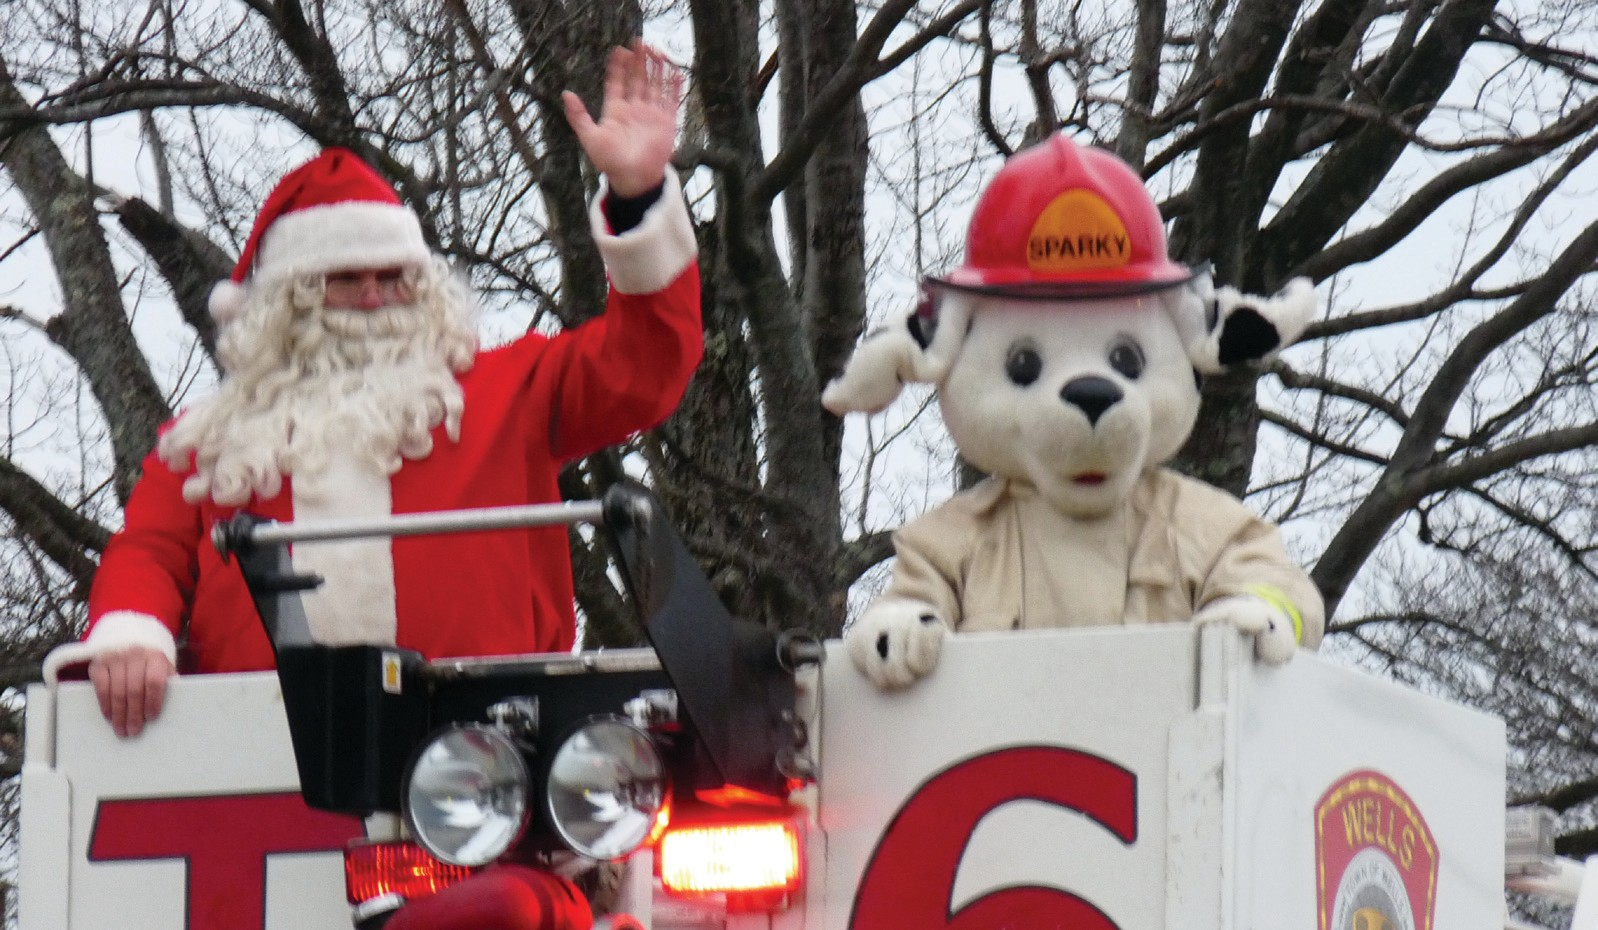 Santa waves from a firetruck at last year's Christmas parade in Wells.